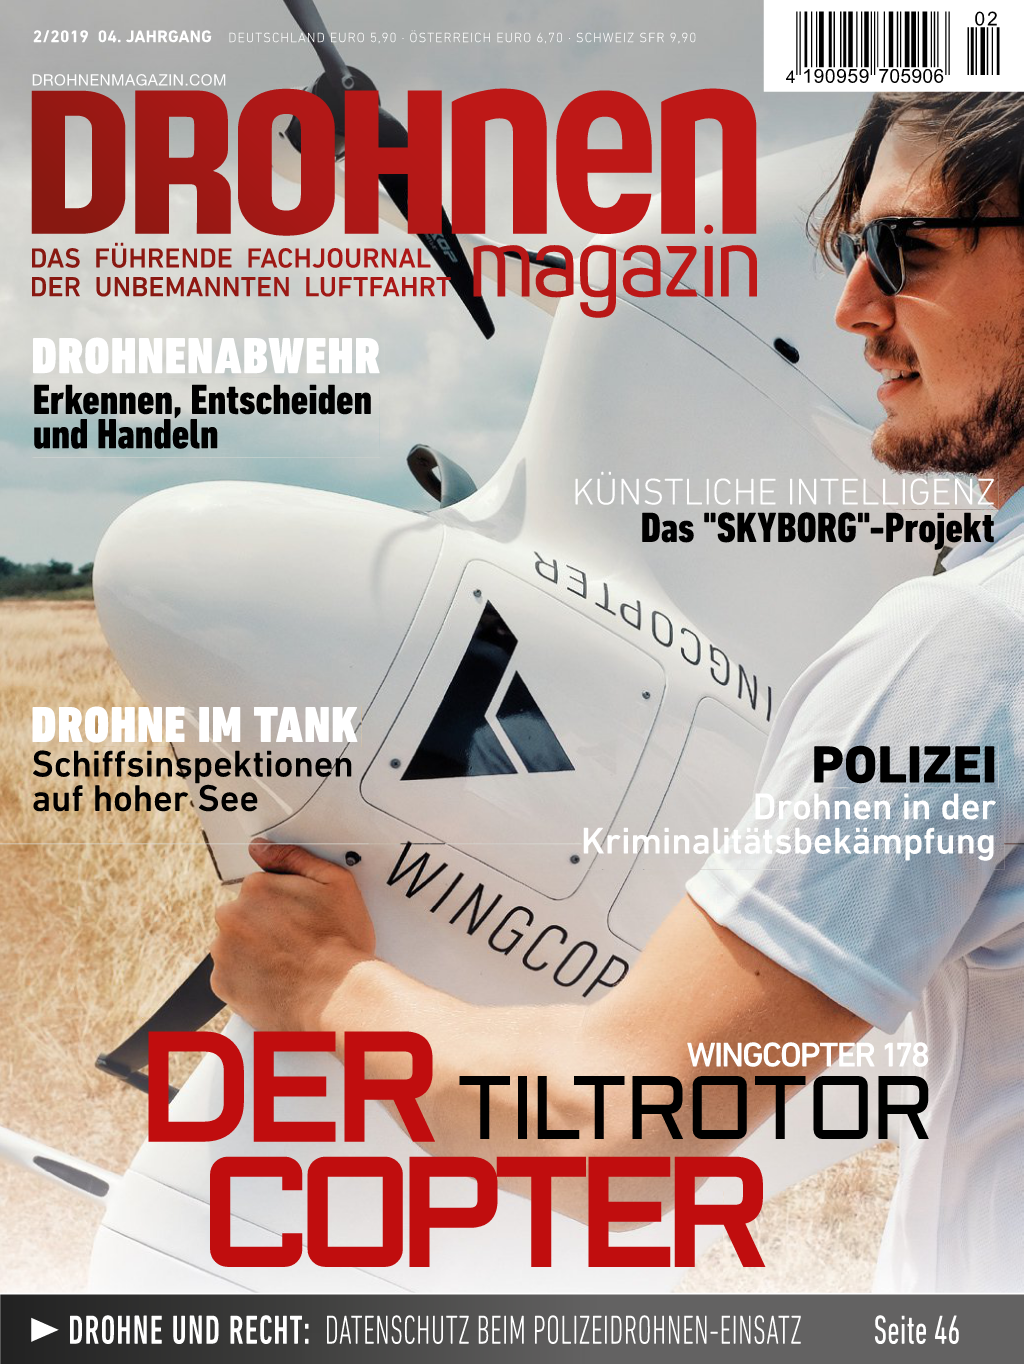 Drohnenmagazin <br /> <b>Notice</b>:  Undefined index: number in <b>/var/www/web3/htdocs/DROHNENMAGAZIN/website/index.php</b> on line <b>223</b><br /> <br /> <b>Notice</b>:  Undefined index: year in <b>/var/www/web3/htdocs/DROHNENMAGAZIN/website/index.php</b> on line <b>223</b><br /> -